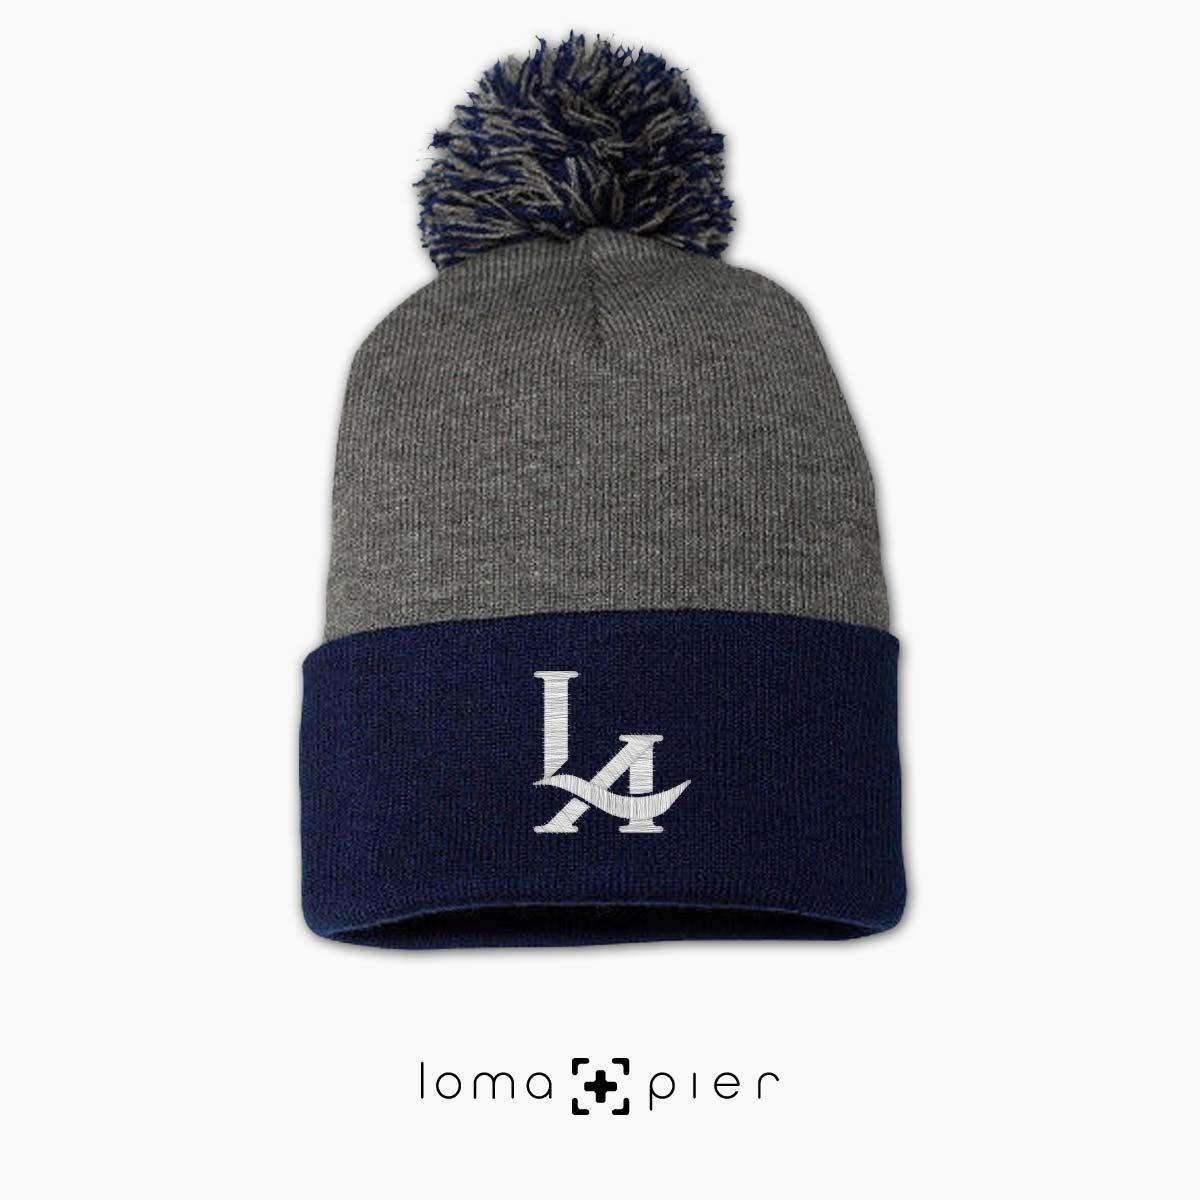 los angeles LA LOGO icon embroidered on a grey navy blue pom pom beanie by loma+pier hat store